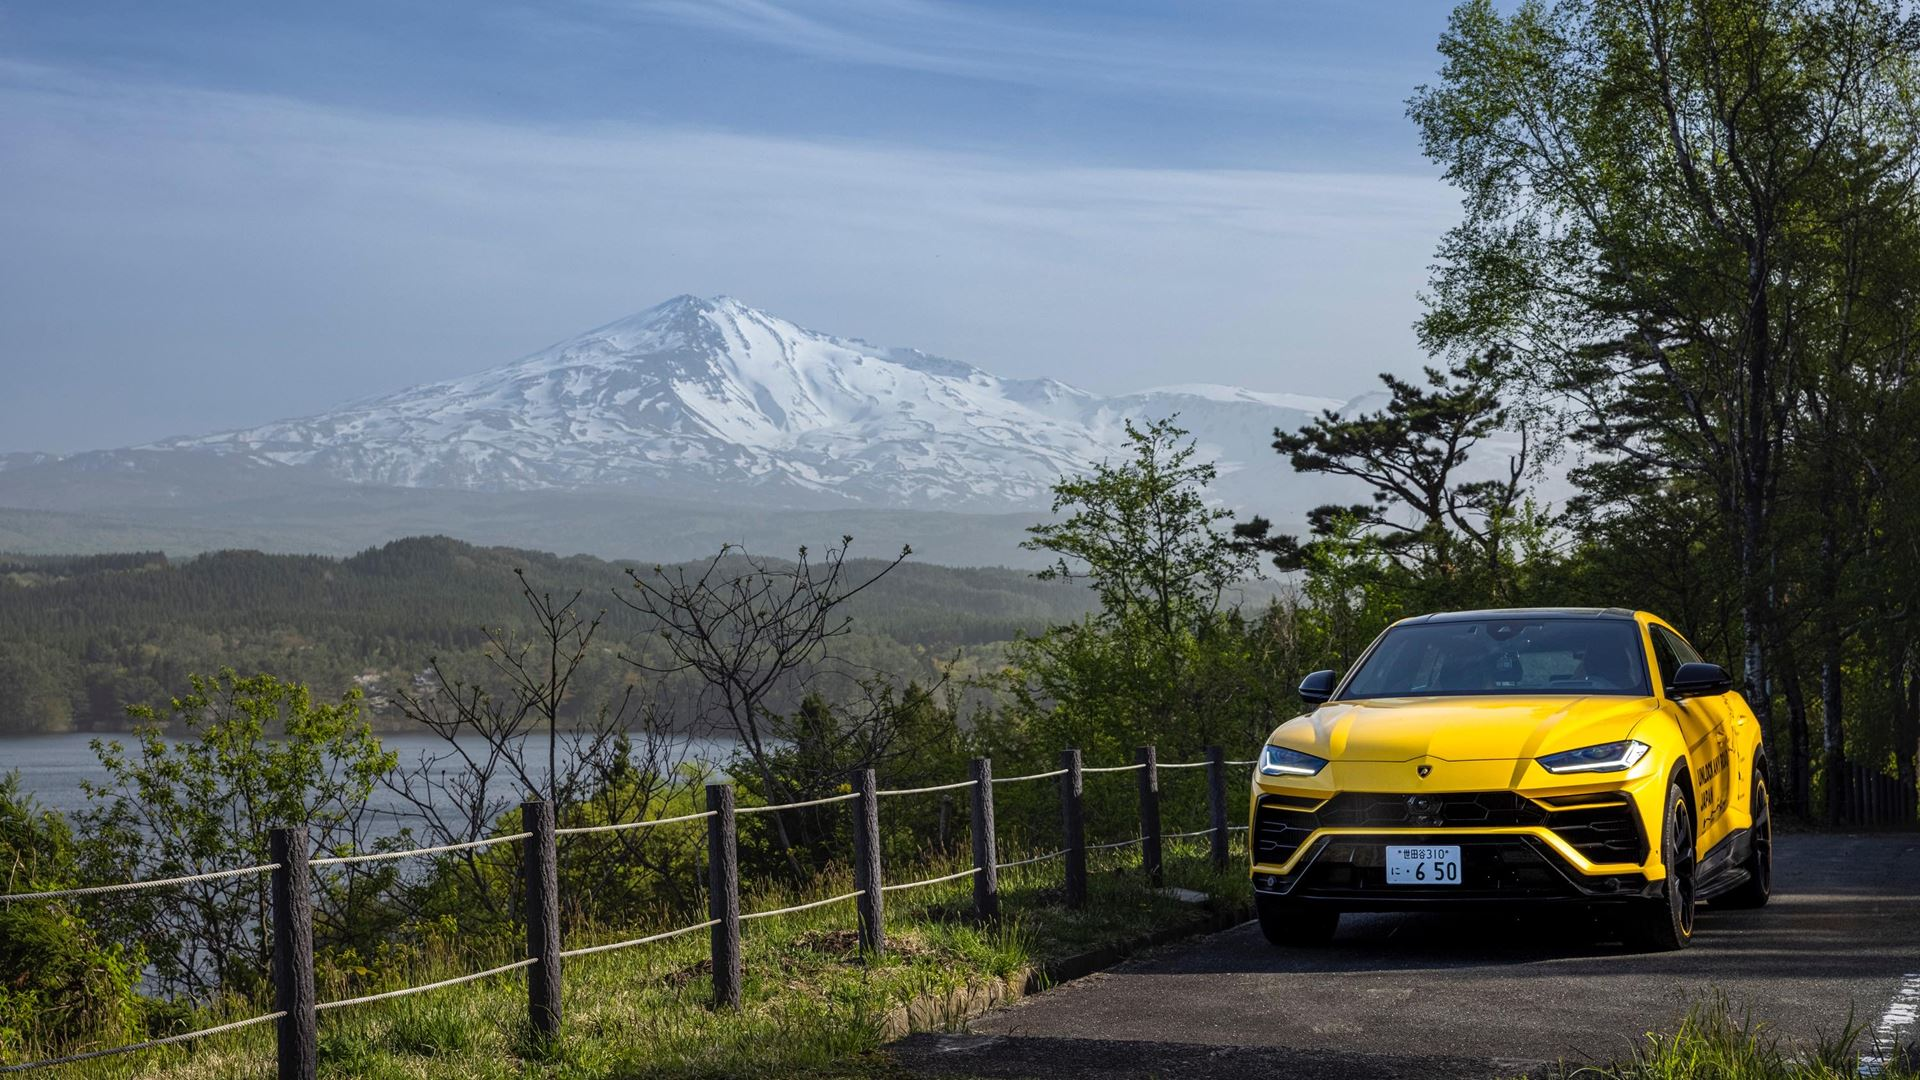 """""""UNLOCK ANY ROAD JAPAN"""" Urus expedition over 6.500 Km across Japan - Image 4"""